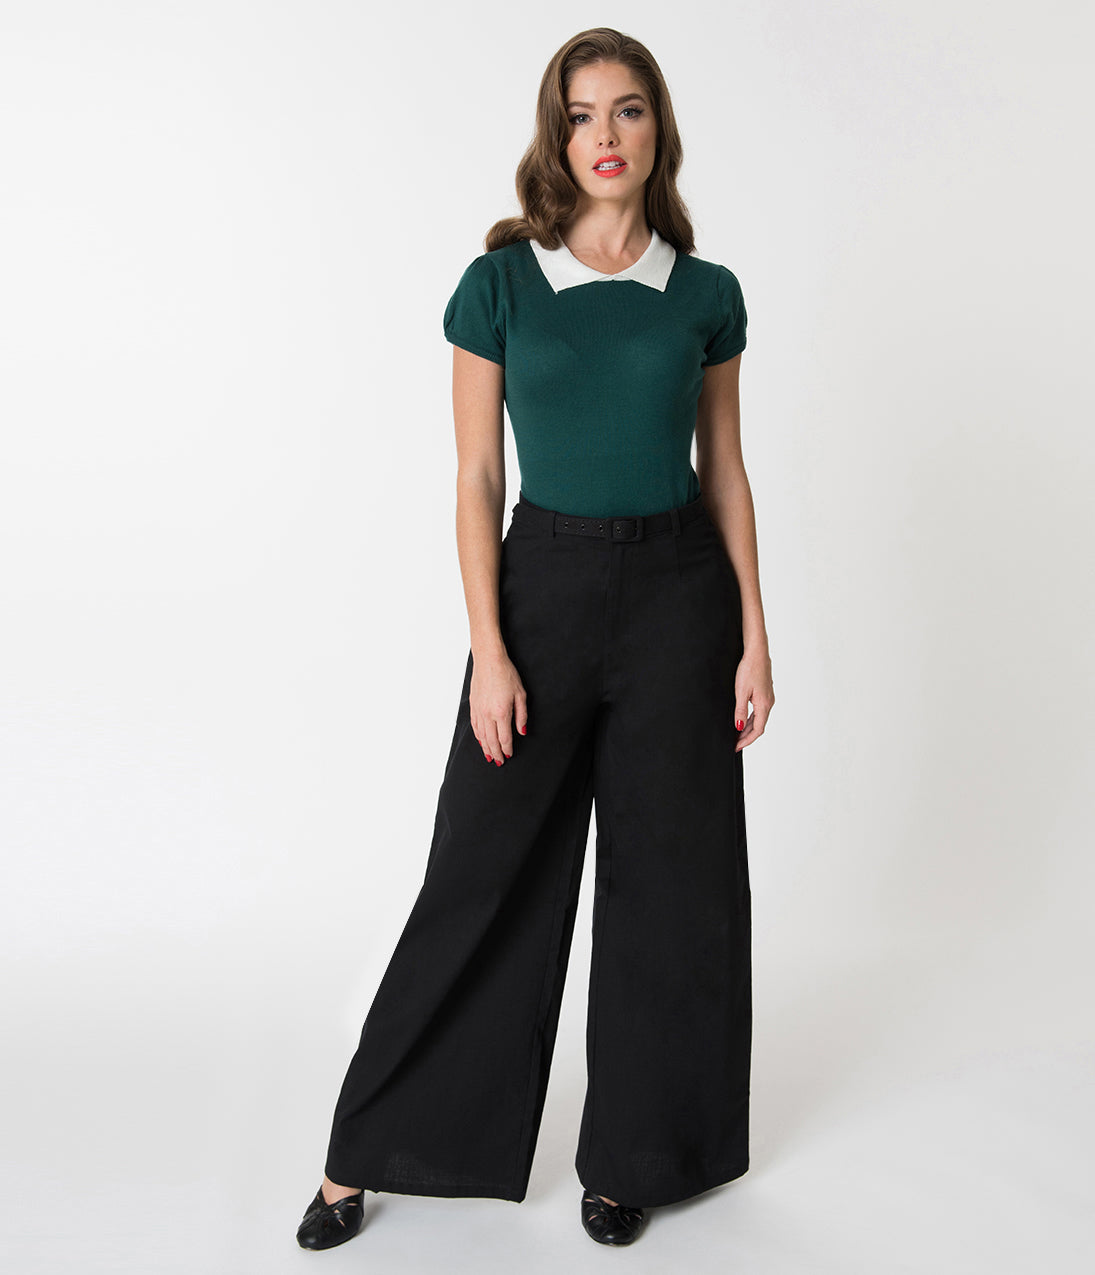 1950s Pants & Jeans- High Waist, Wide Leg, Capri, Pedal Pushers Collectif Black Wide Leg Vicky Cotton Trousers $51.00 AT vintagedancer.com